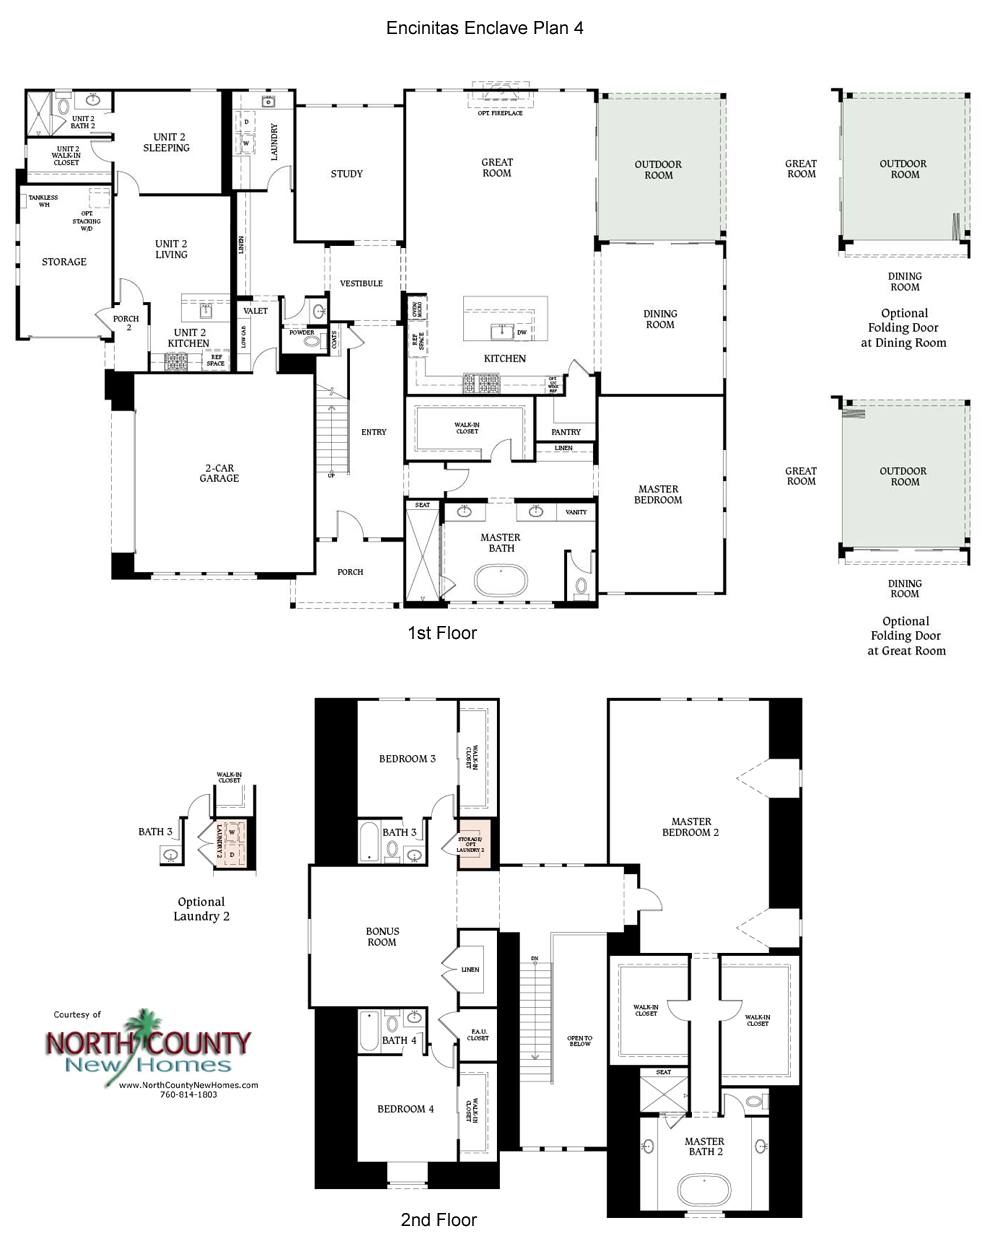 Encinitas Enclave New Homes North County New Homes Floor Plans New Homes House Floor Plans